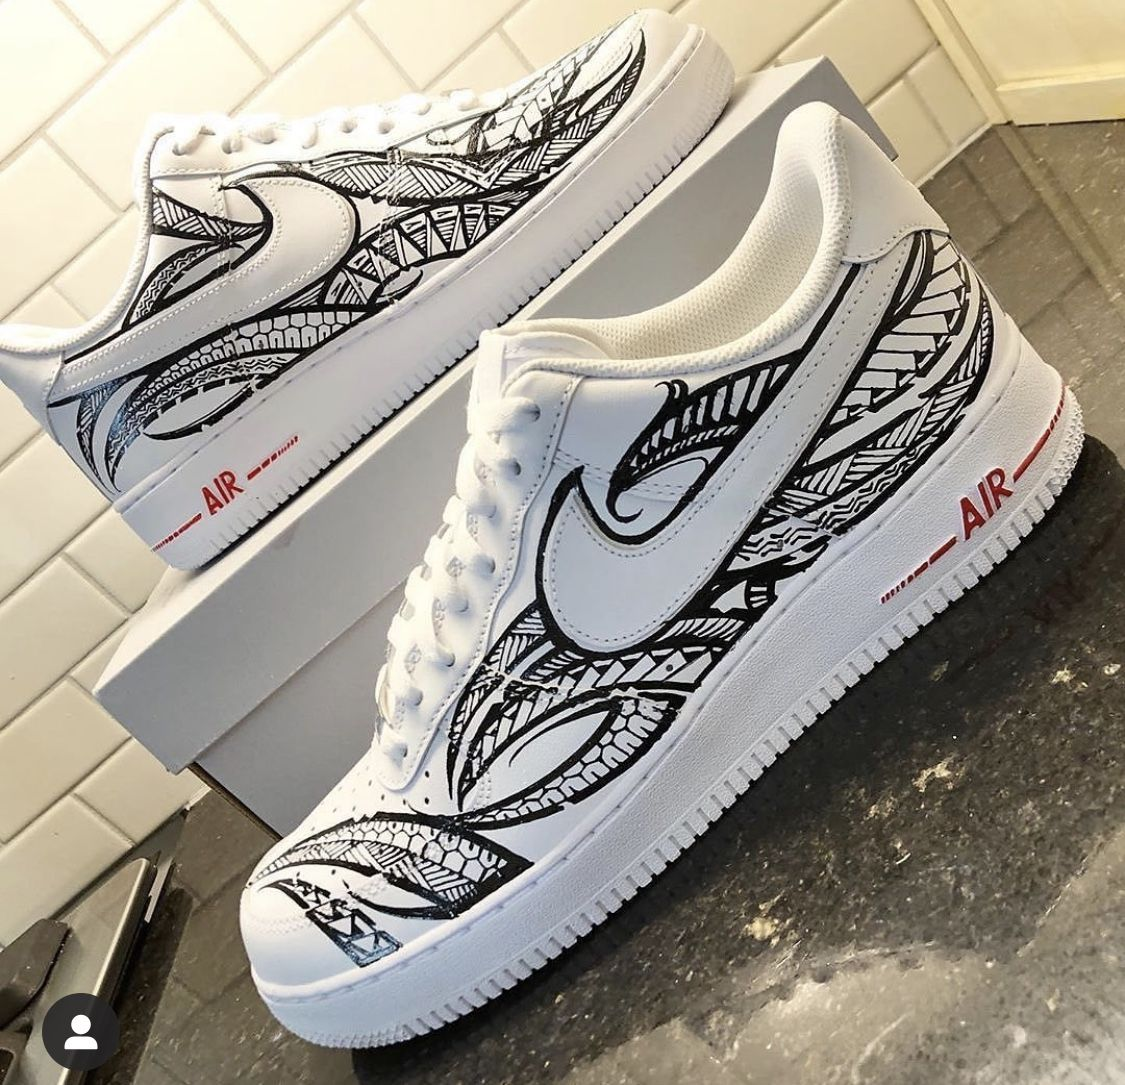 Pin on Nike Air Force 1 's